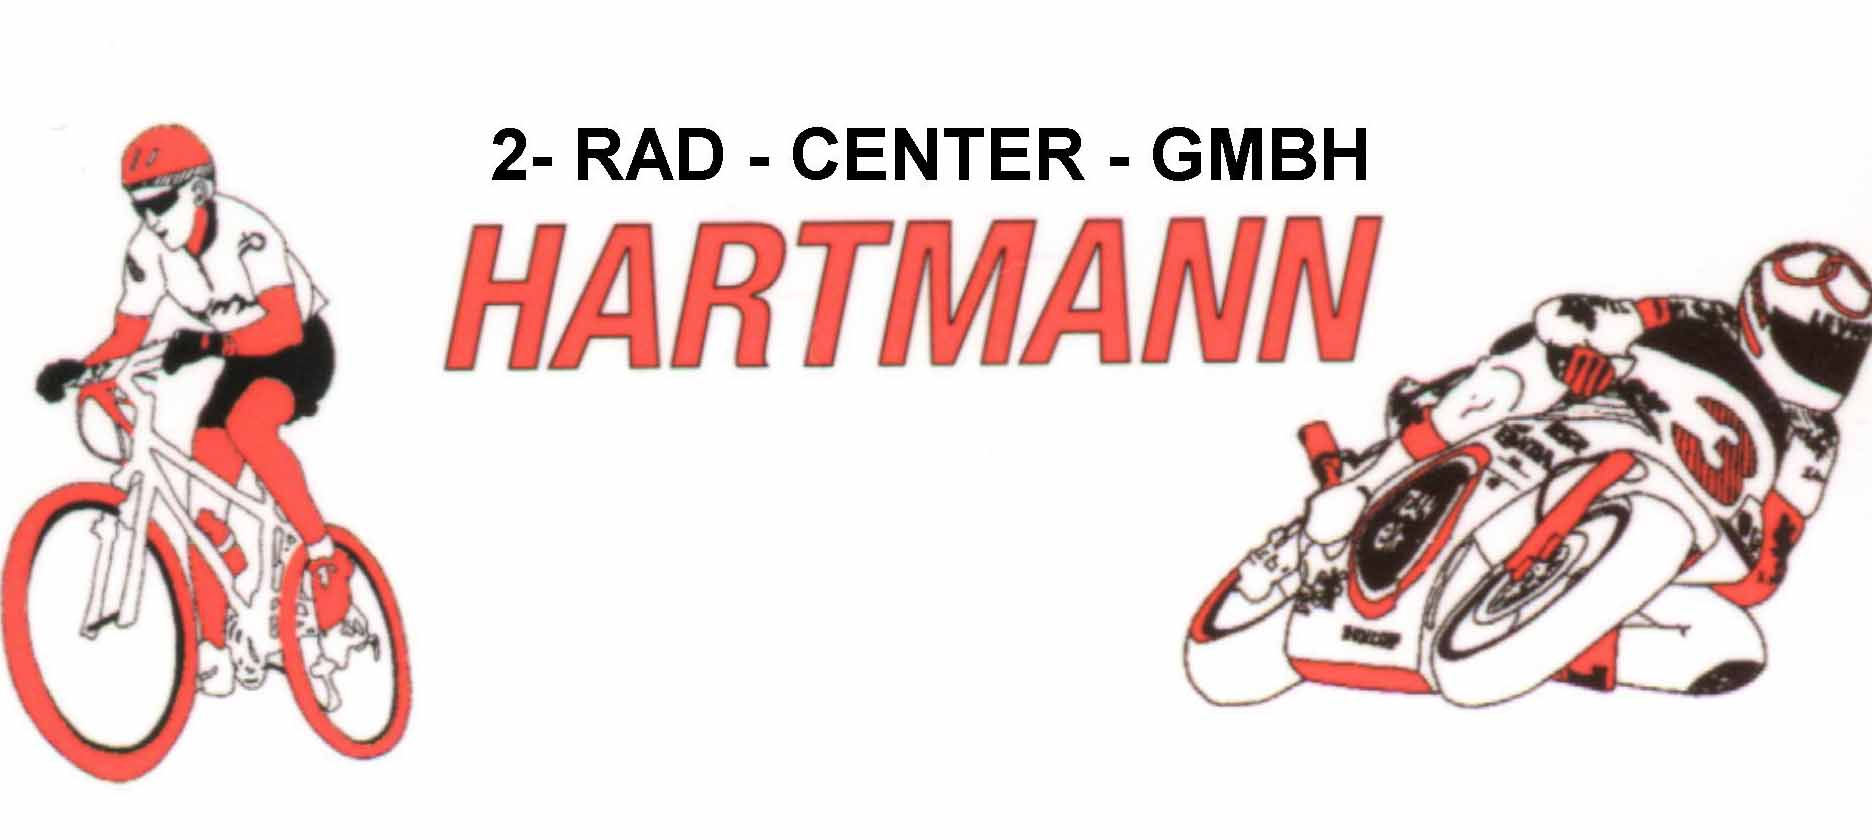 Hartmann 2-Rad-Center GmbH